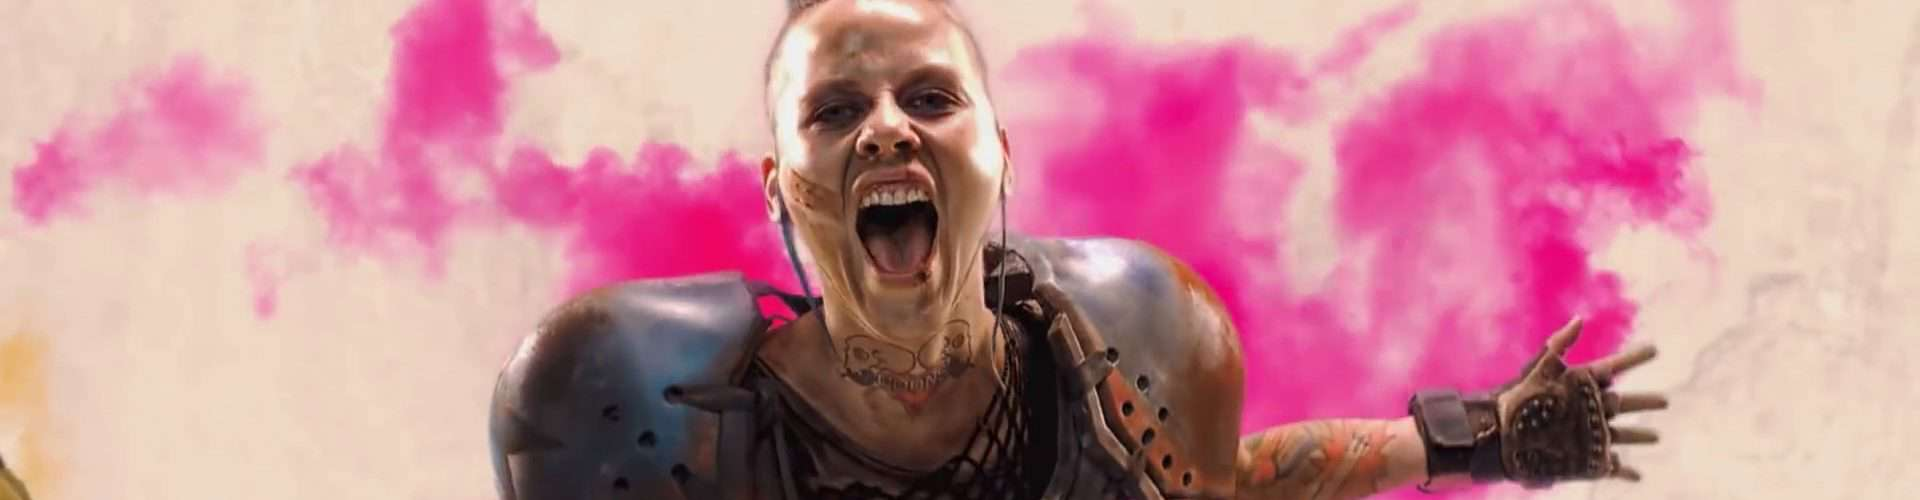 Rage 2 Release Date, News, Trailer and Rumors